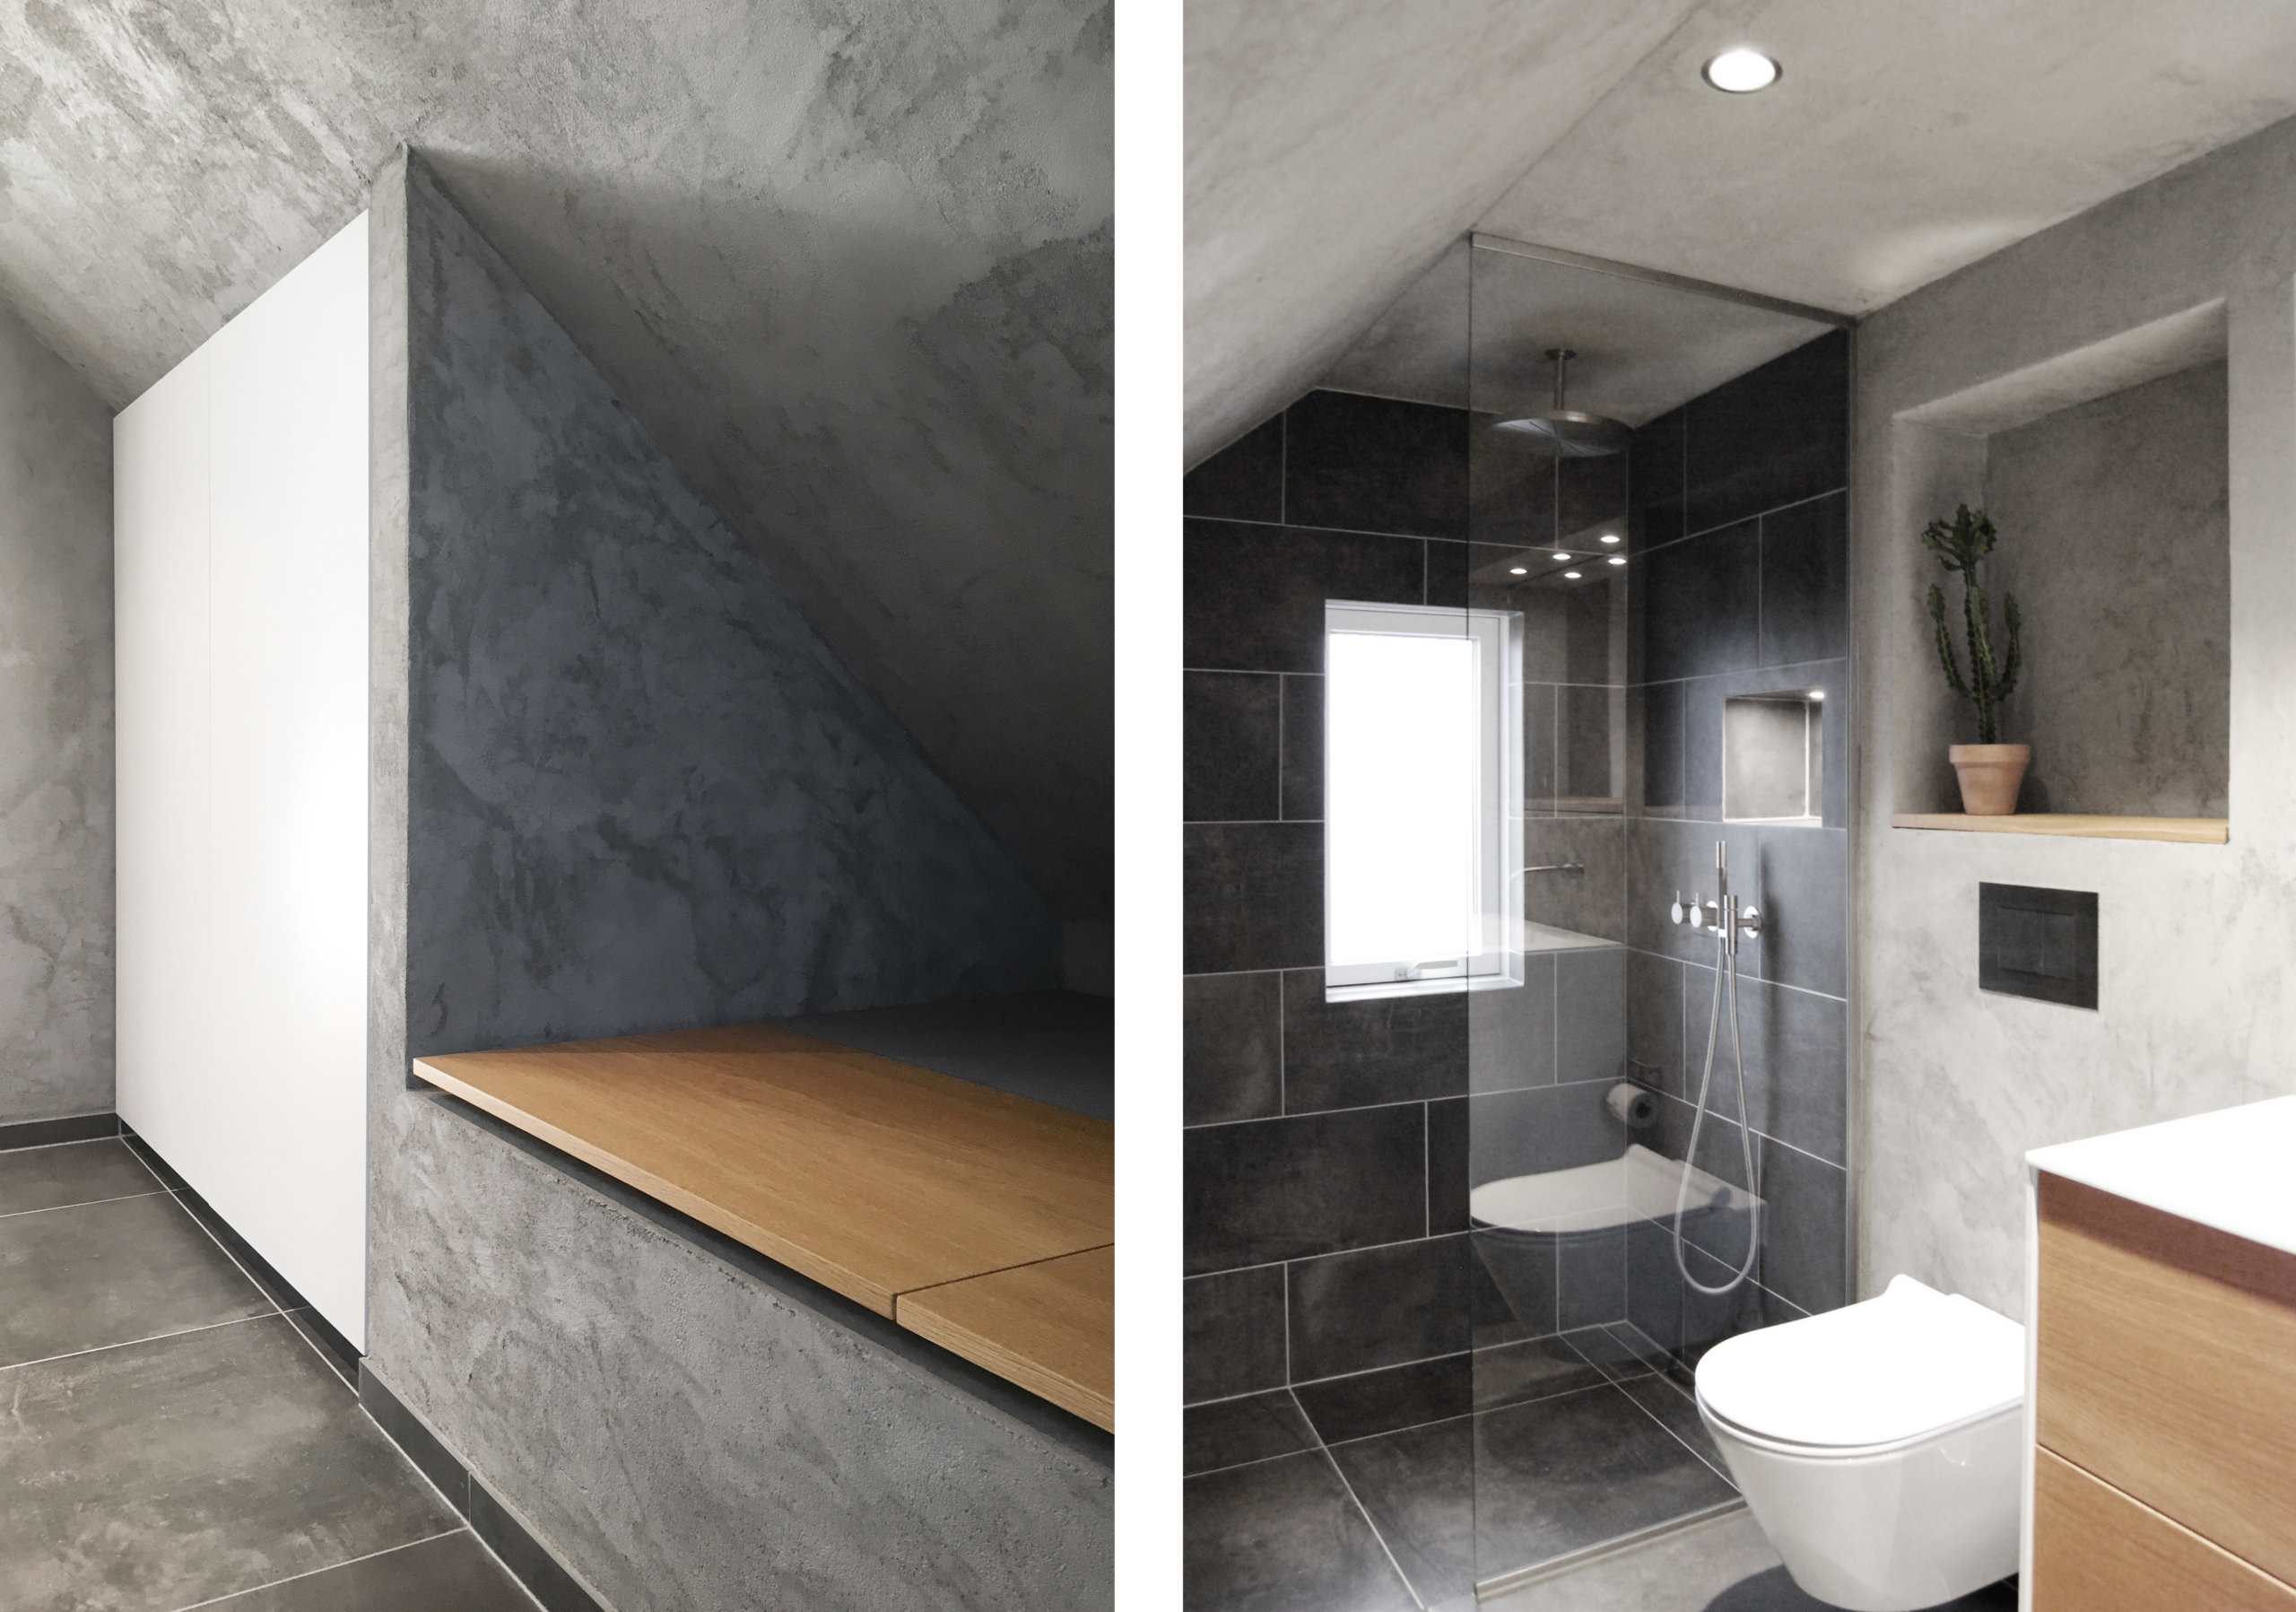 Rough concrete walls are combined with dark gray tiles and wooden vanity inside the posh modern bathroom